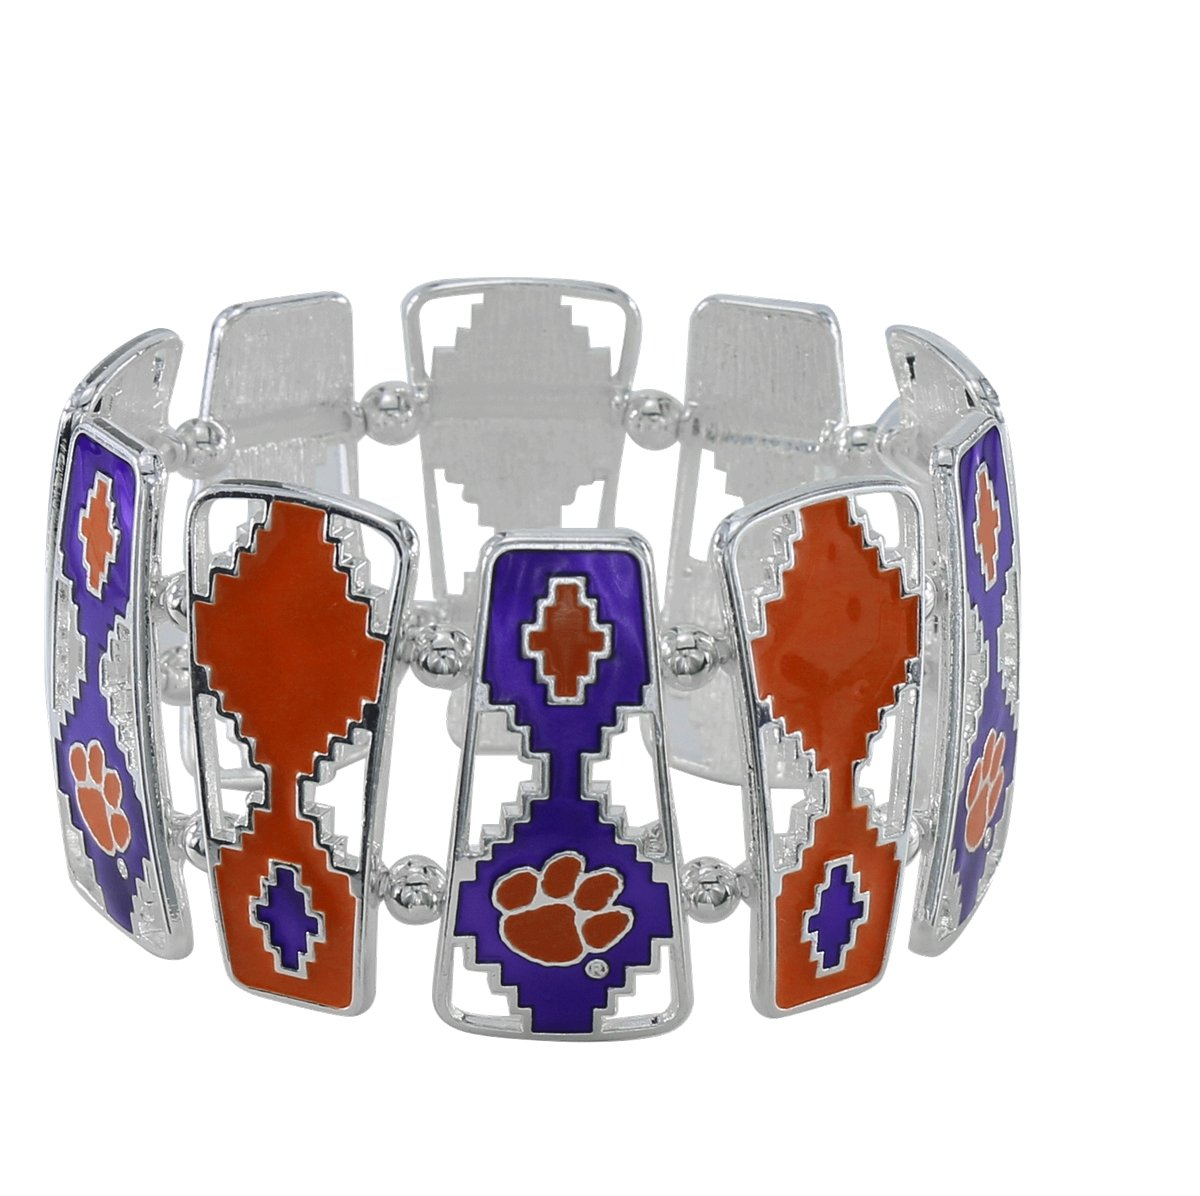 Clemson Aztec Bracelet - Mr. Knickerbocker